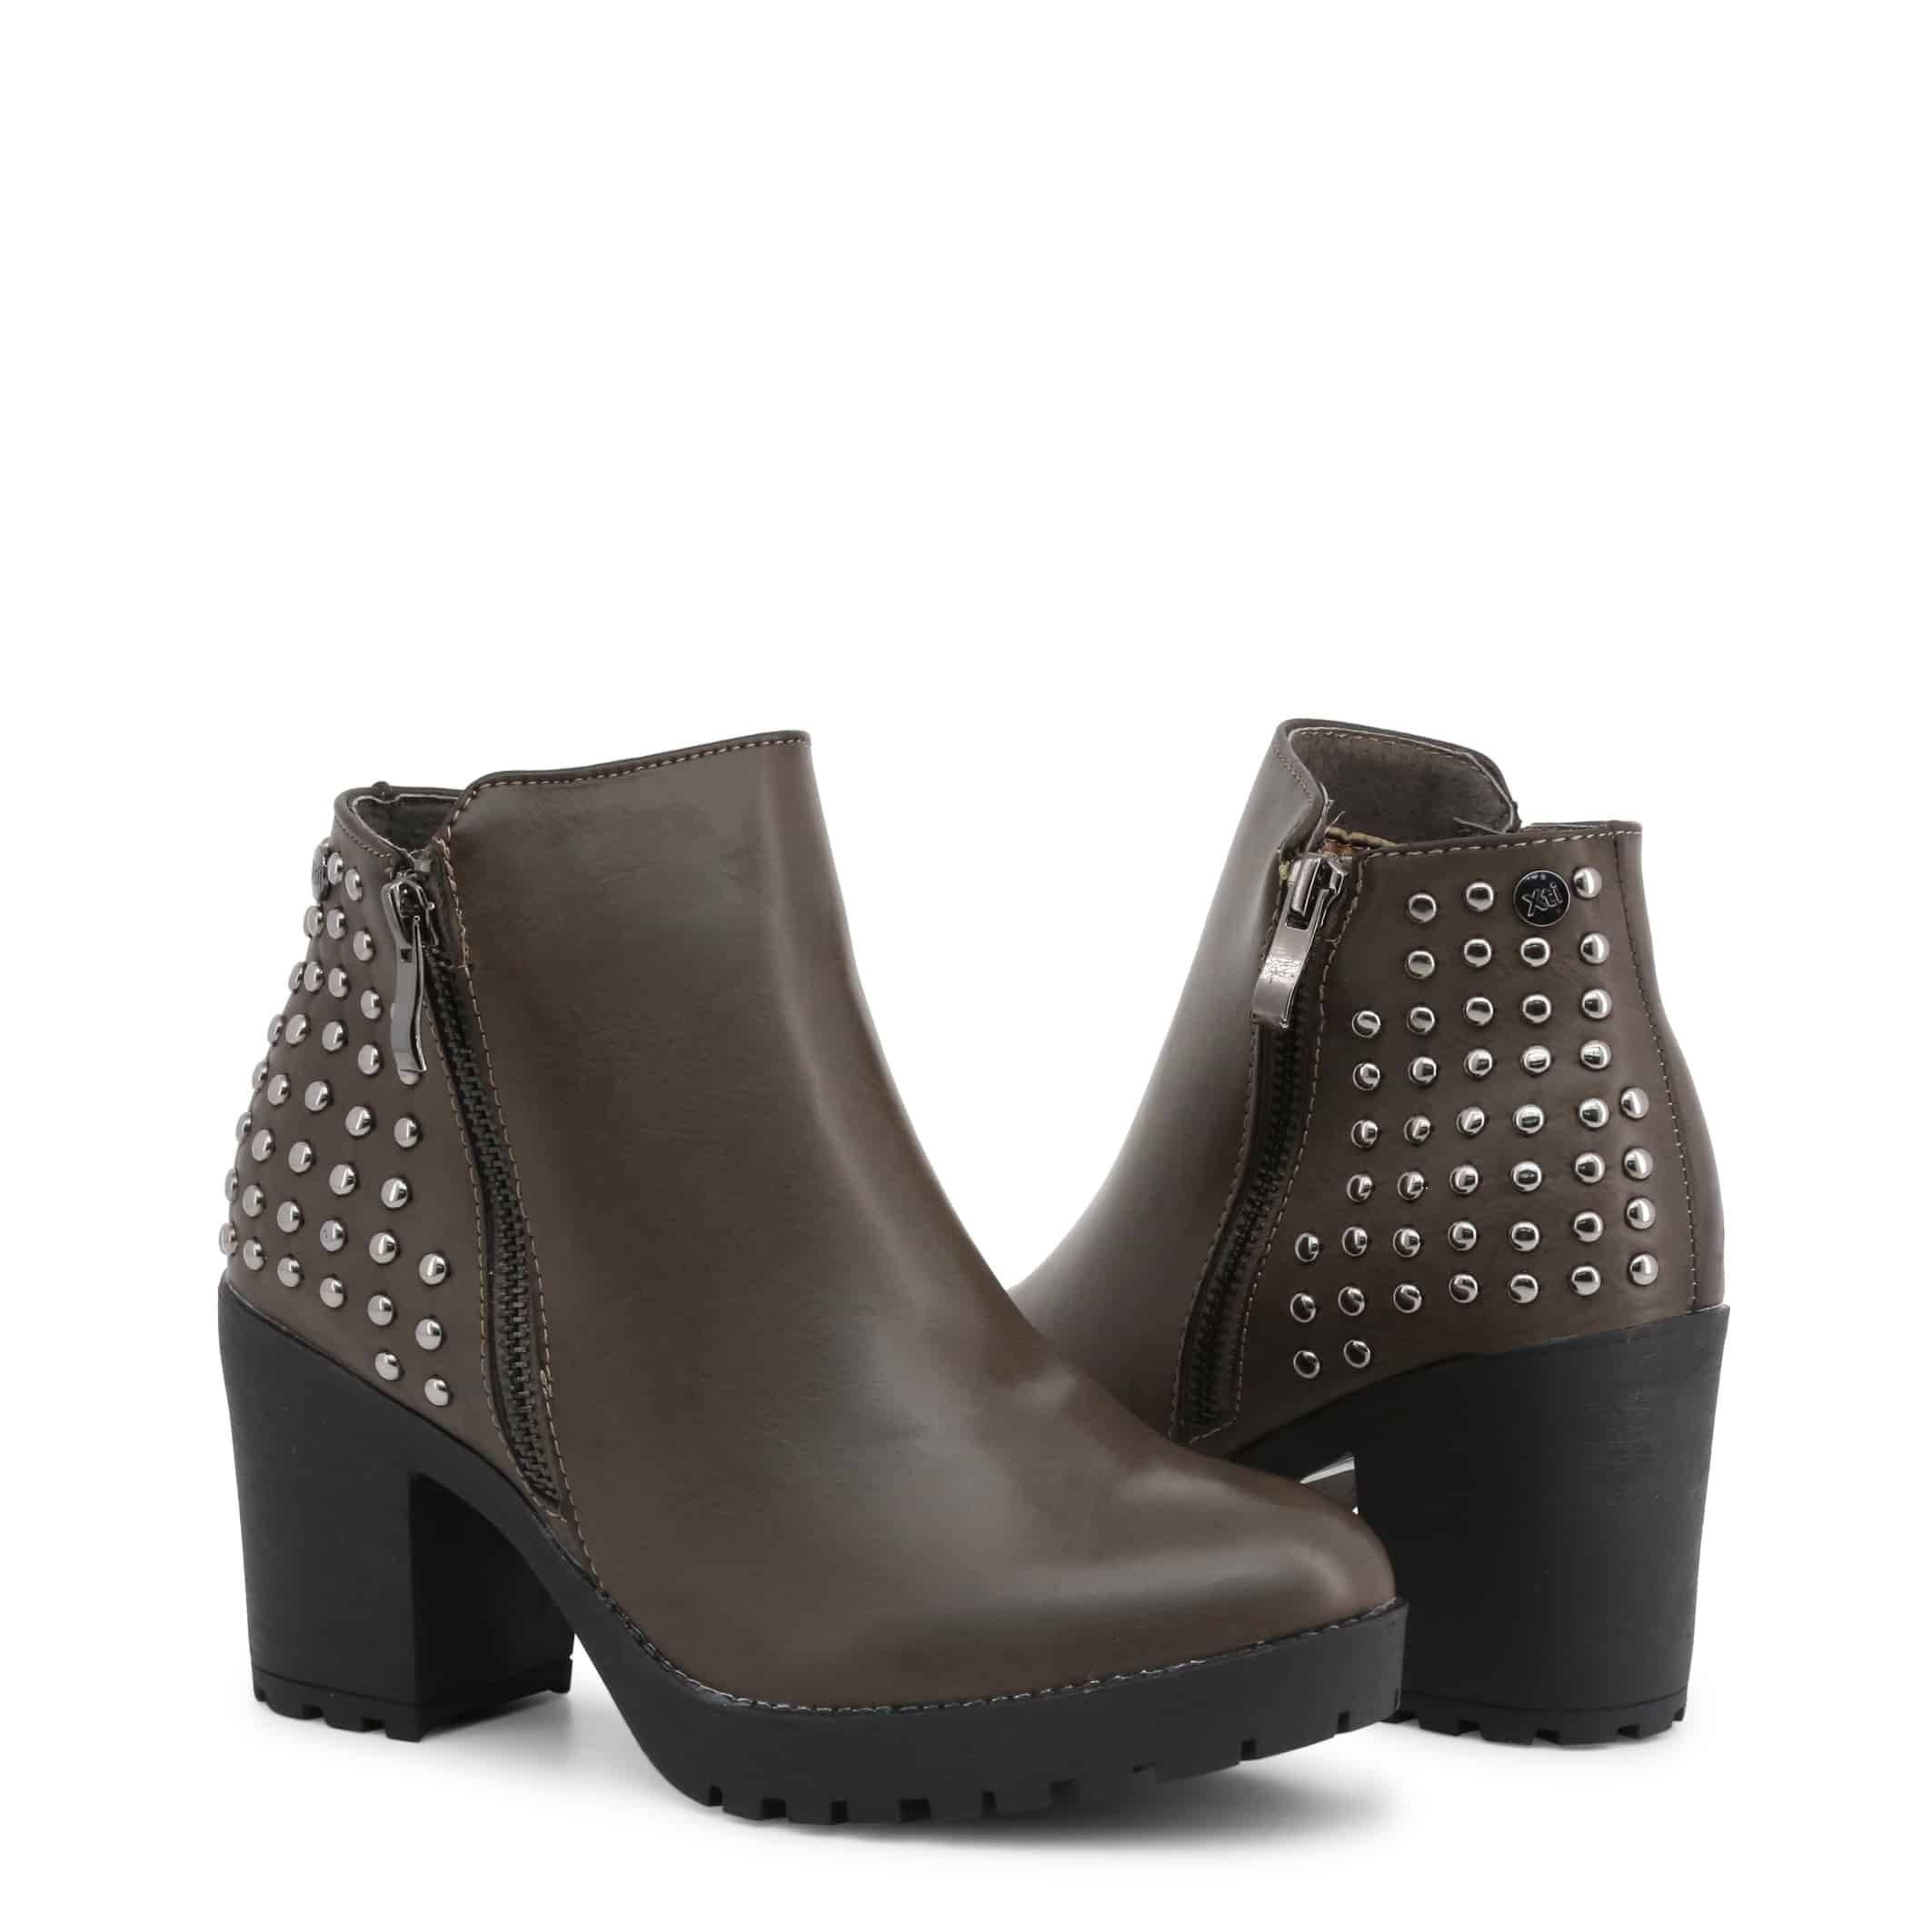 Xti - 48456 - Grey • Ankle boots, Shoes